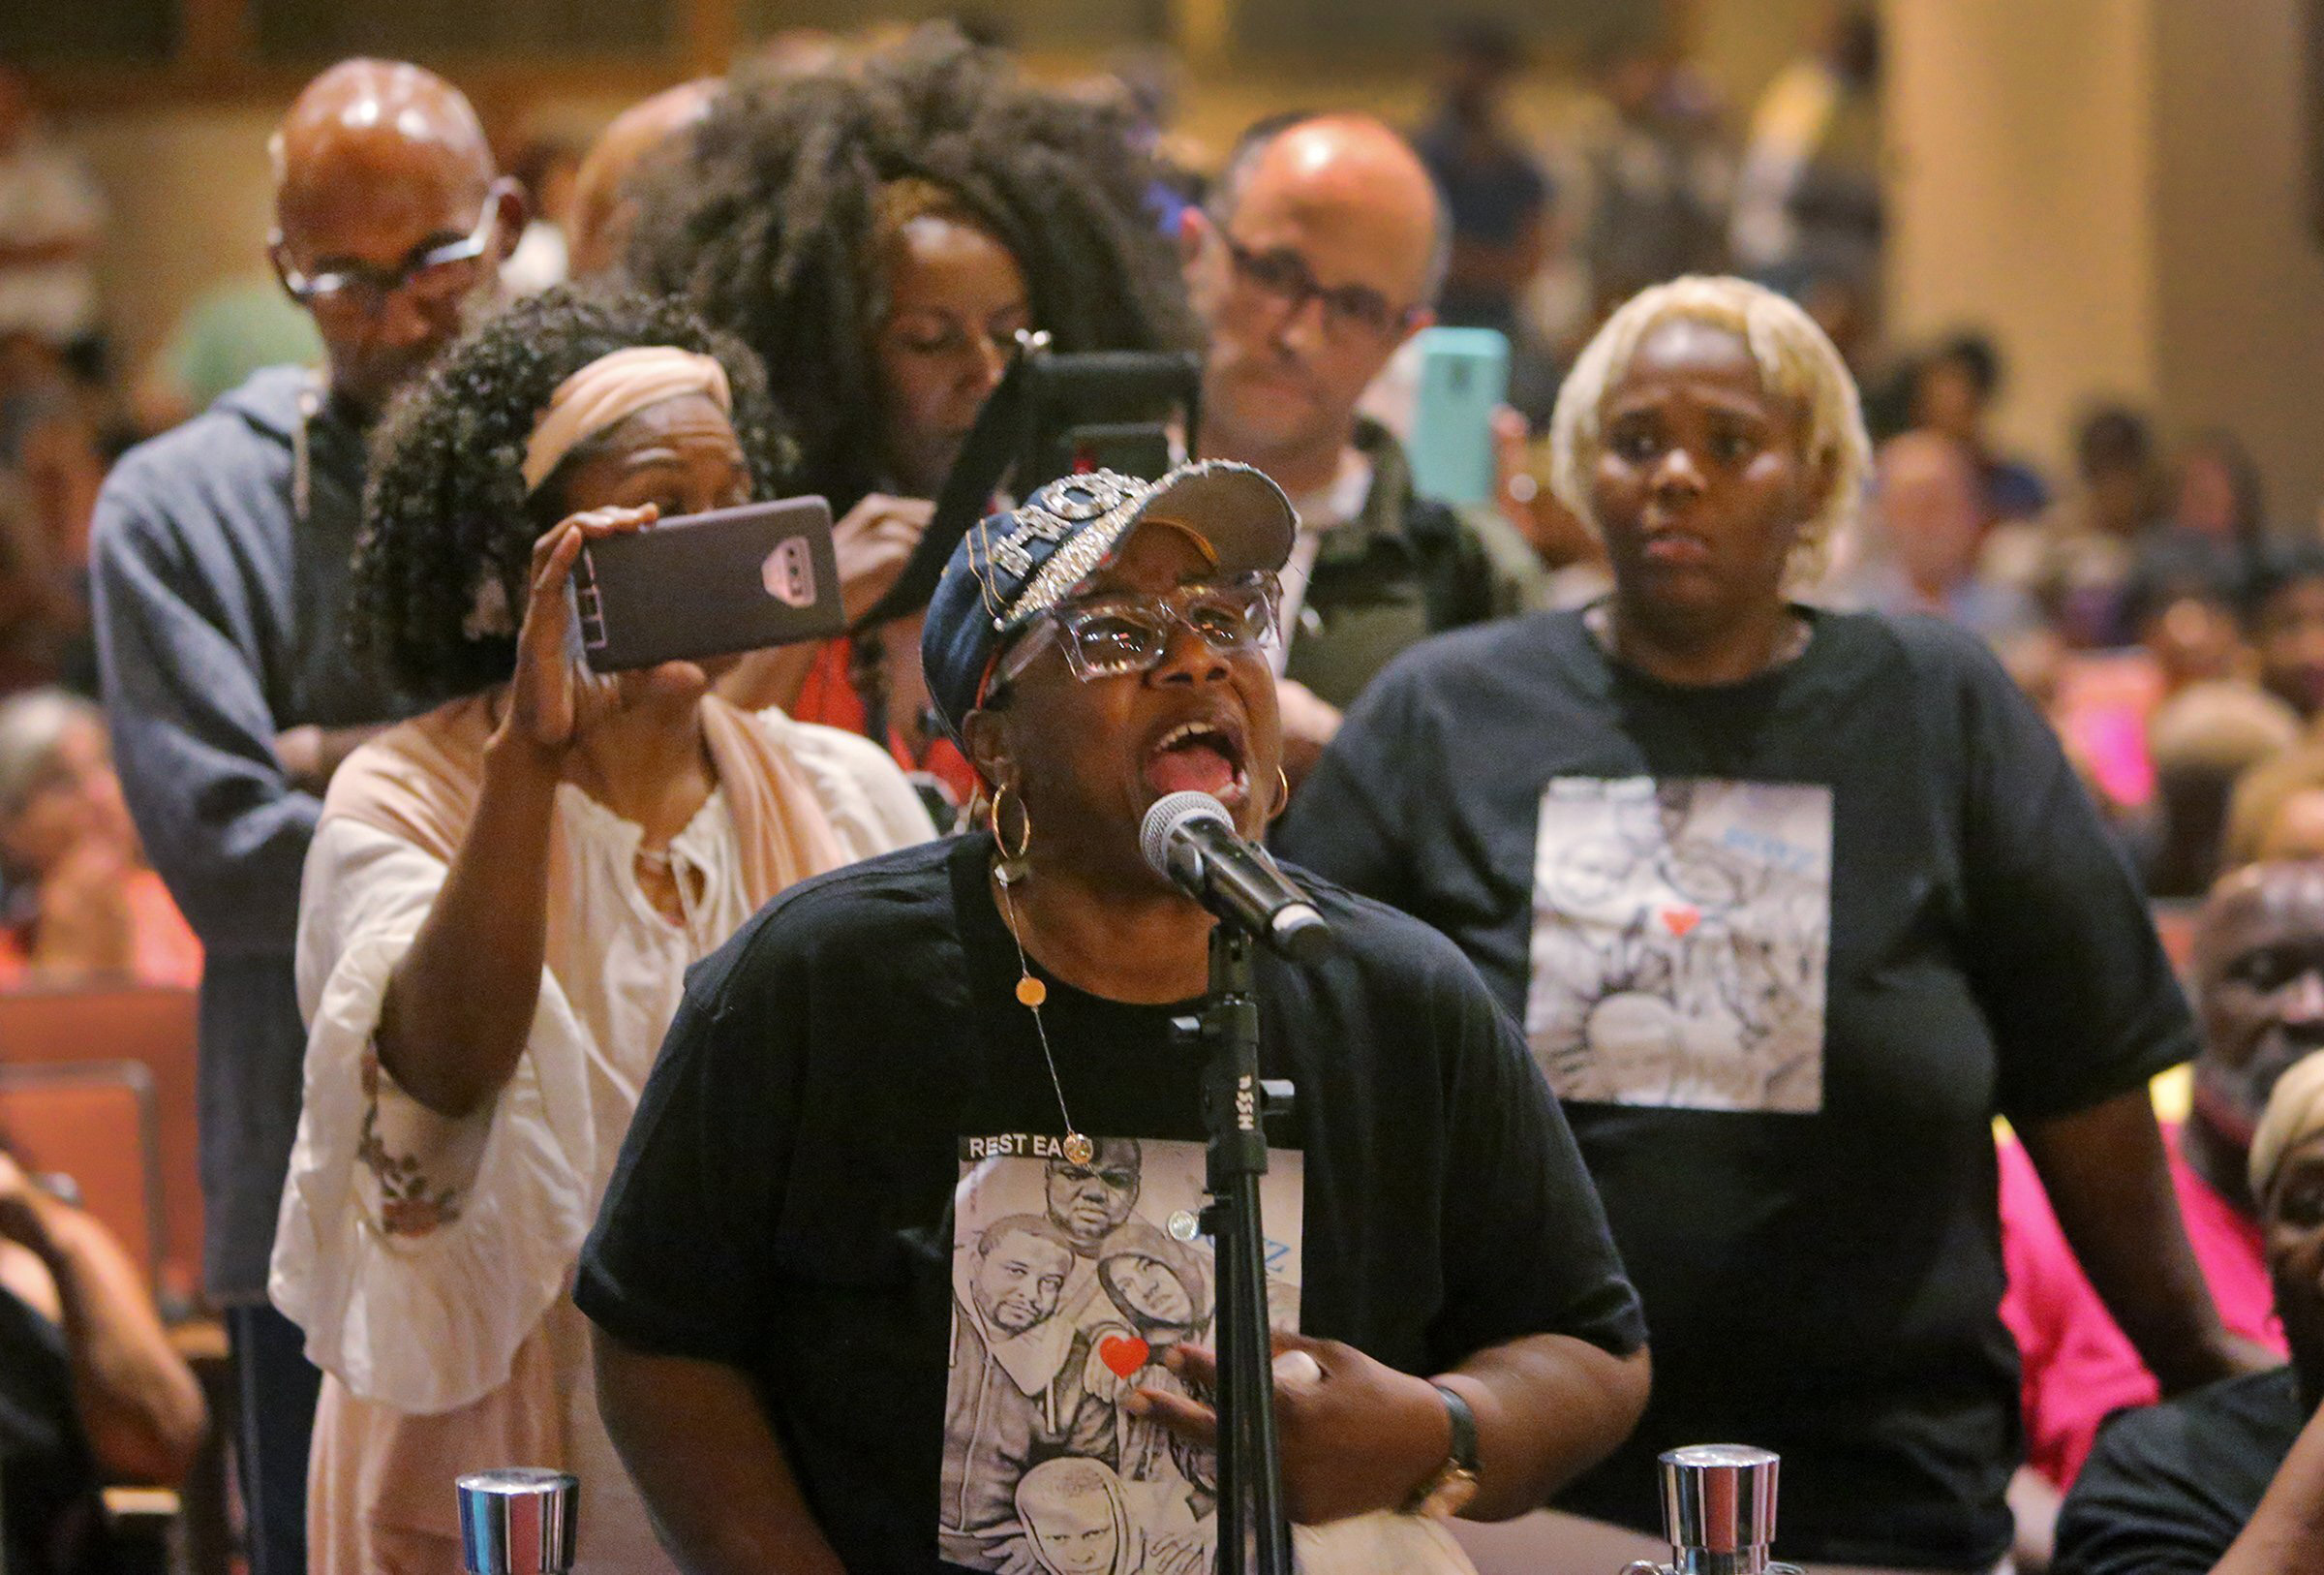 My heart hurts,  said Evelyn Sutton, 68, the first person in line to talk to the panel at the urgent Town Hall Meeting on Gun Violence at Harris-Stowe State University, on Wednesday, Aug. 28, 2019, in St. Louis. Sutton said she lost four relatives - two grandchildren and two nephews to gun violence. She said she hurts for all of the victims of gun violence.